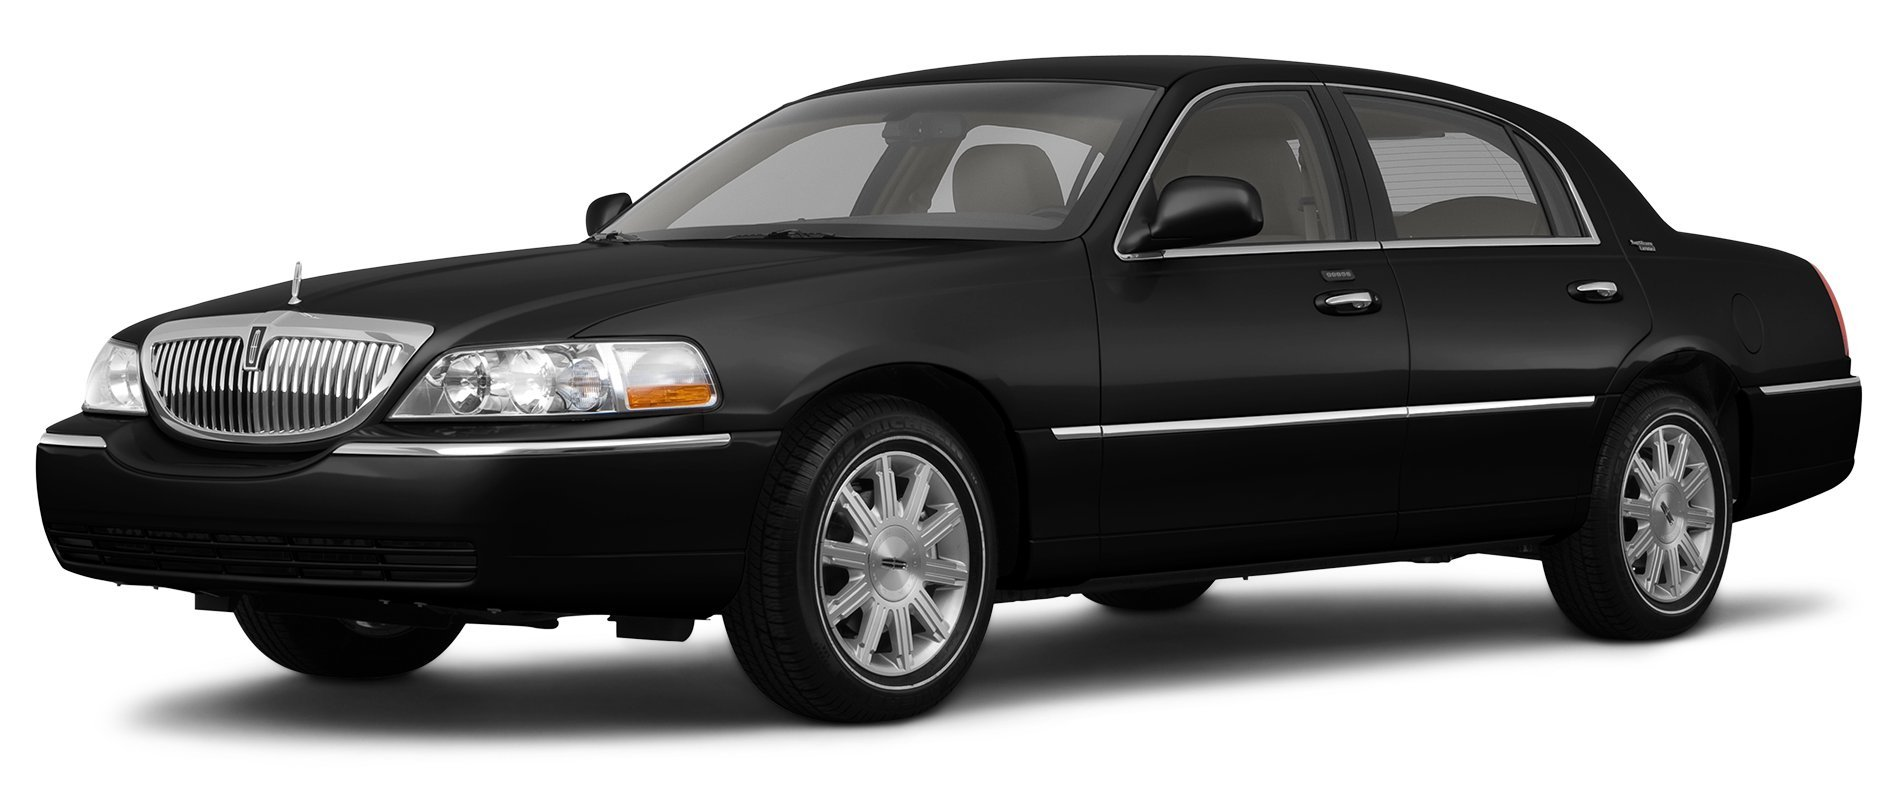 2011 Lincoln Town Car Reviews Images And Specs Vehicles Rim Signature L 4 Door Sedan